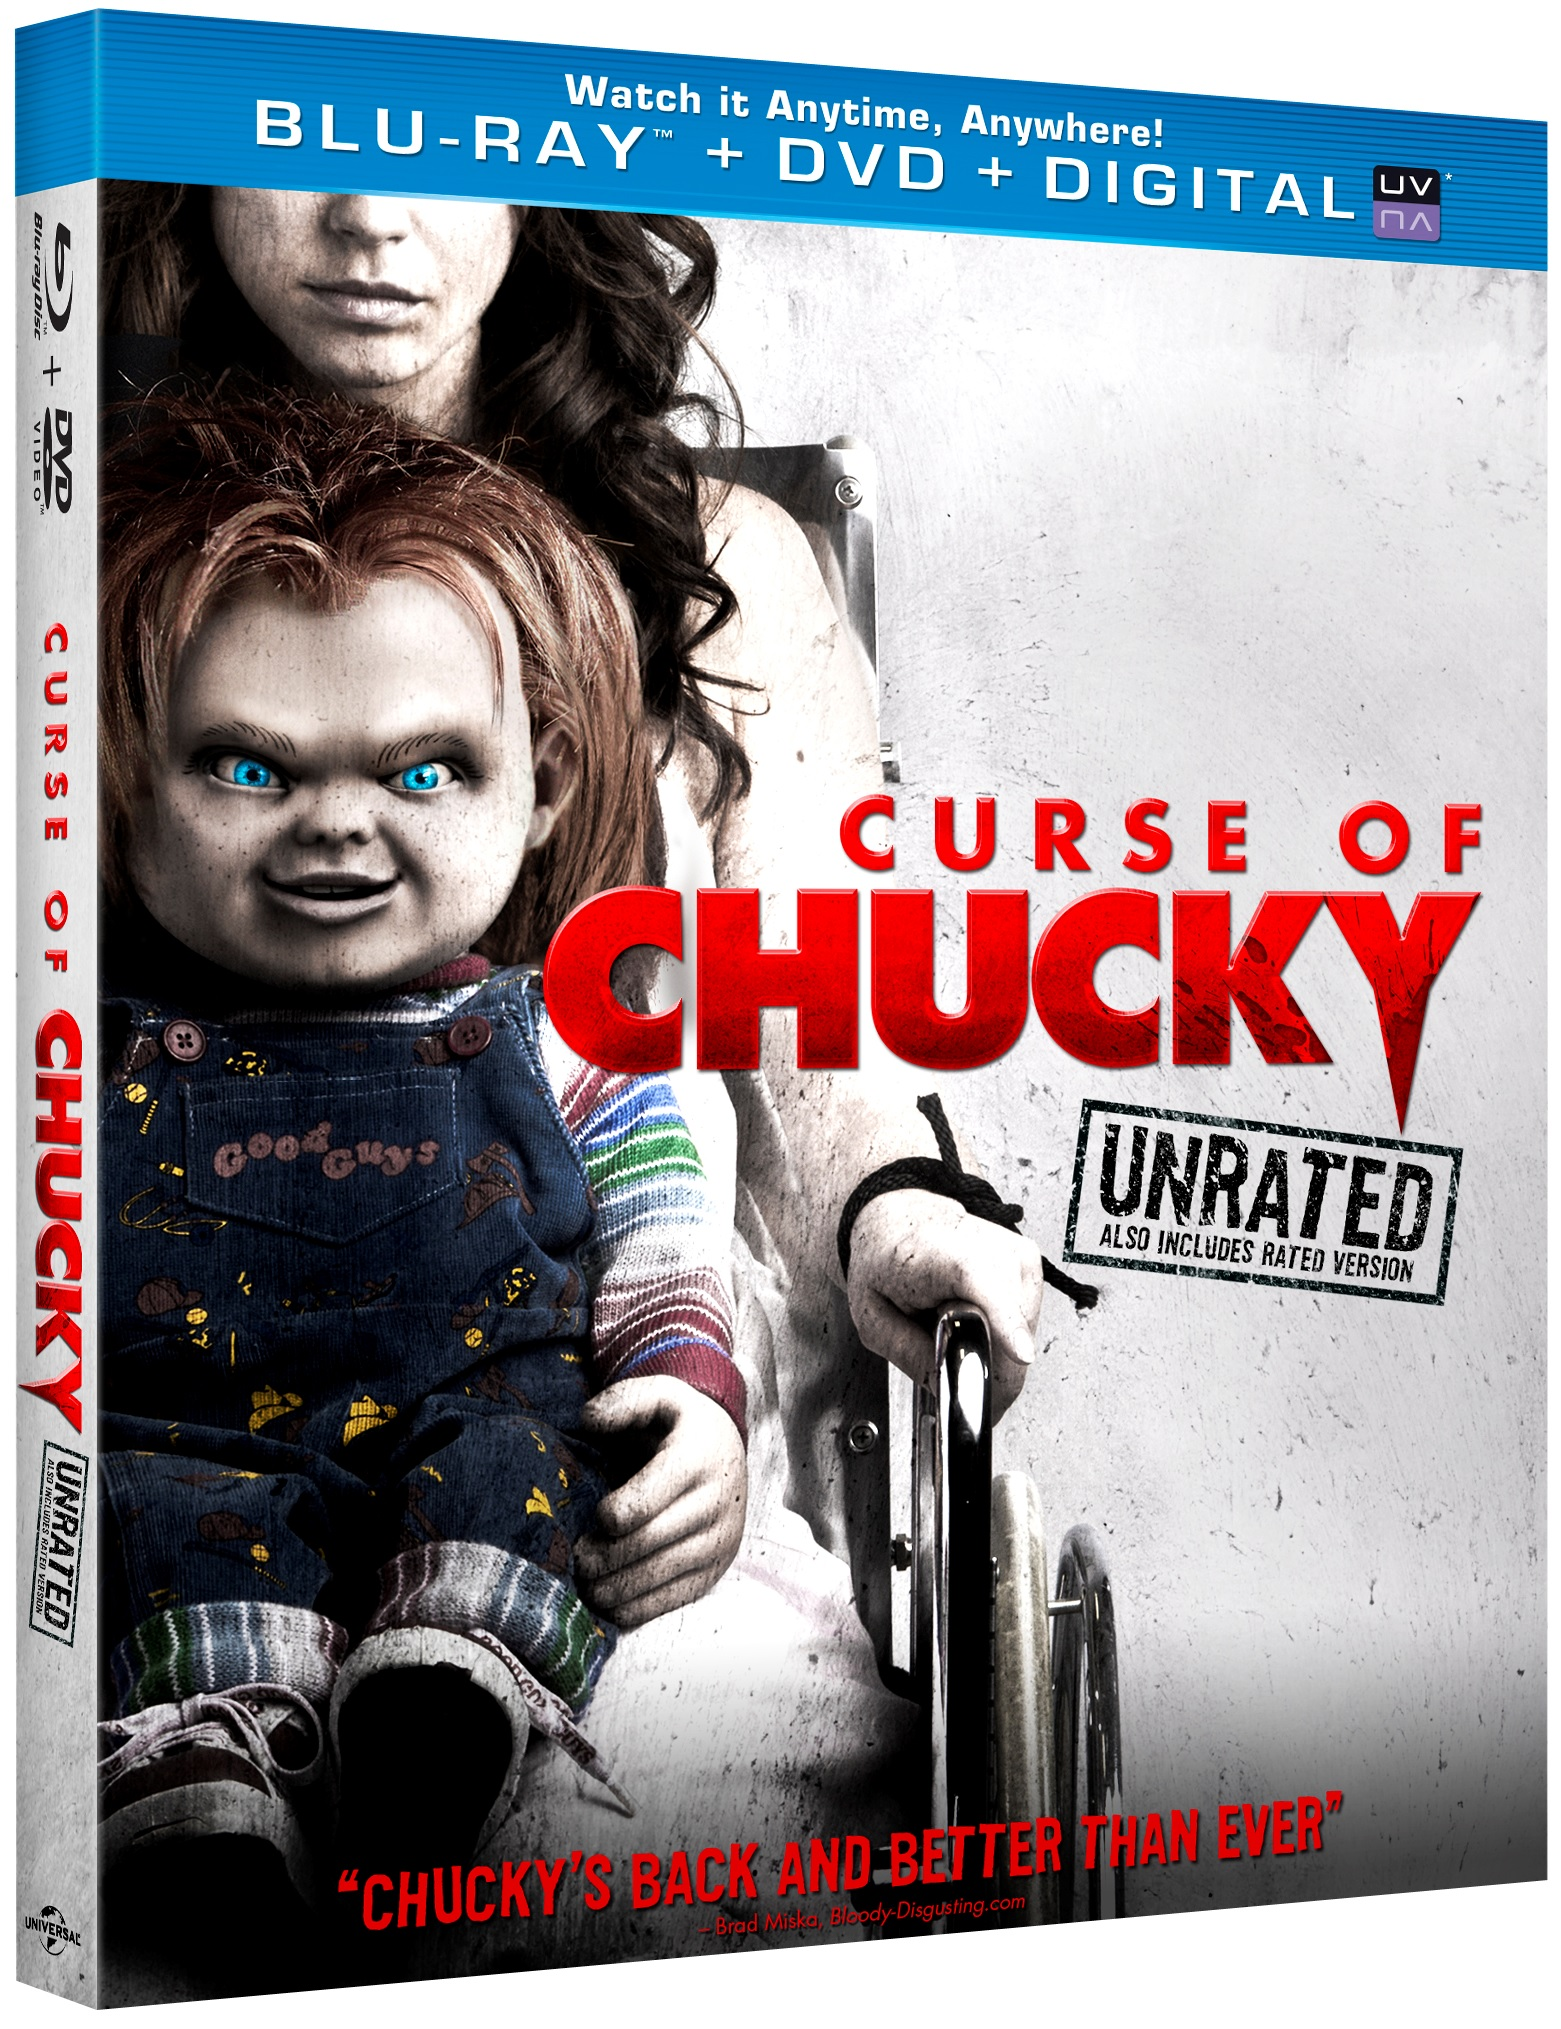 Curse of Chucky Blu-ray Review